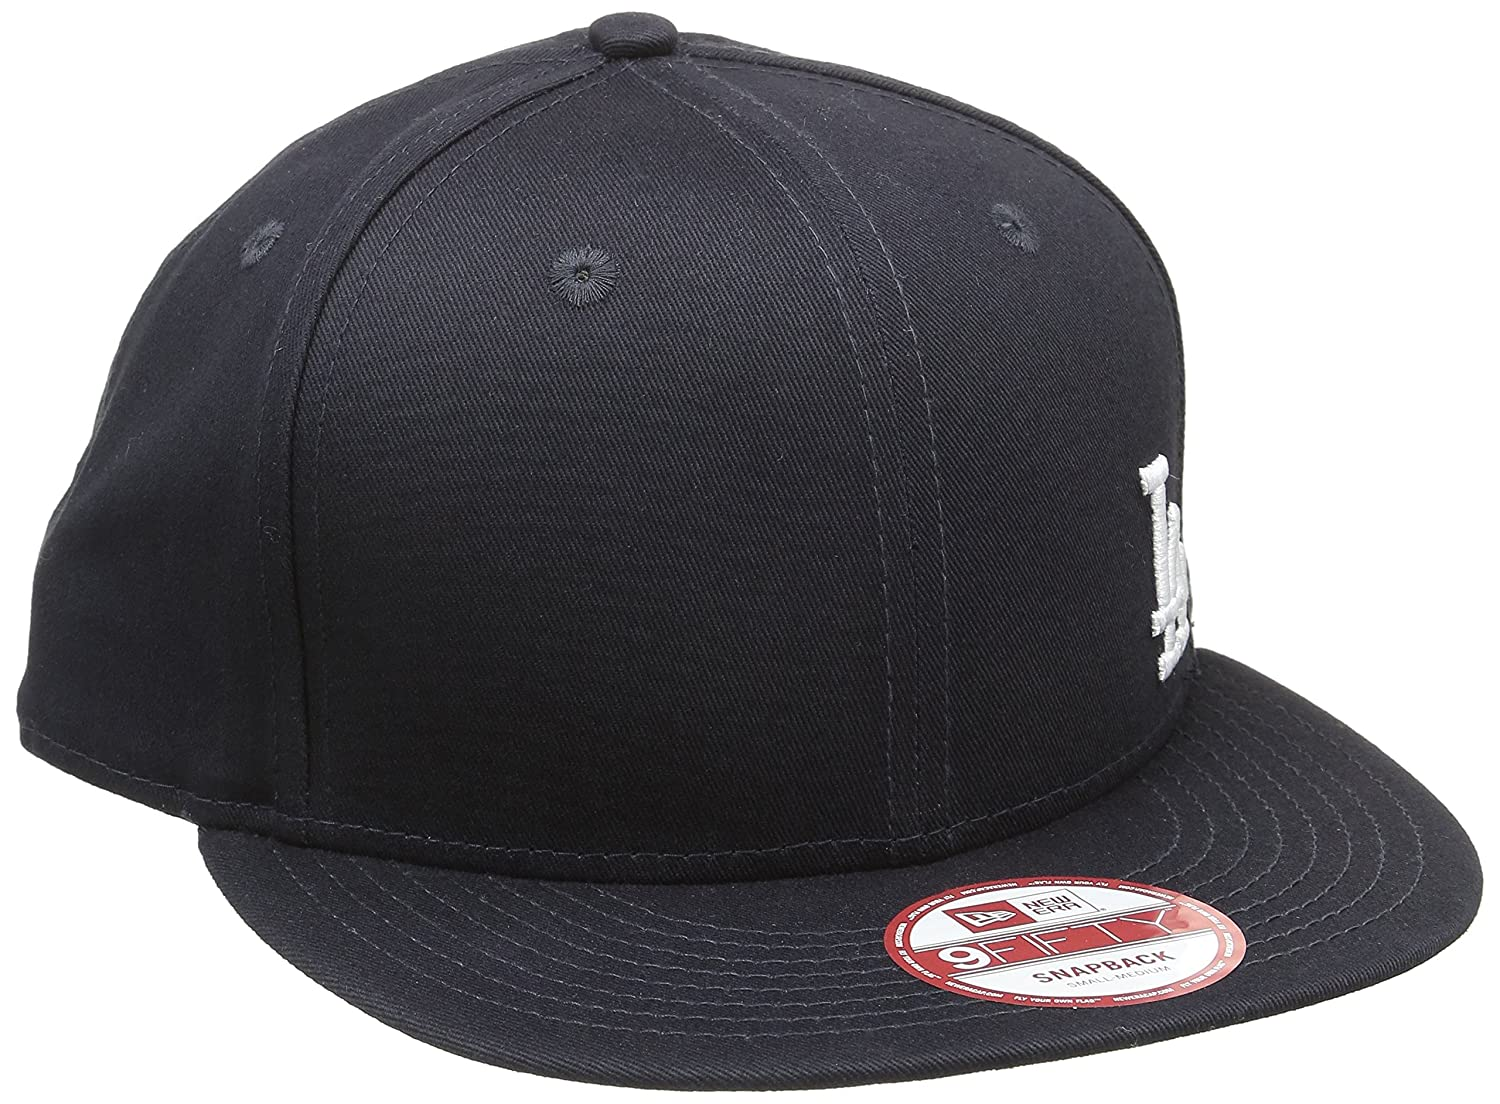 New Era Era Cappellino MLB Flawless 112099347